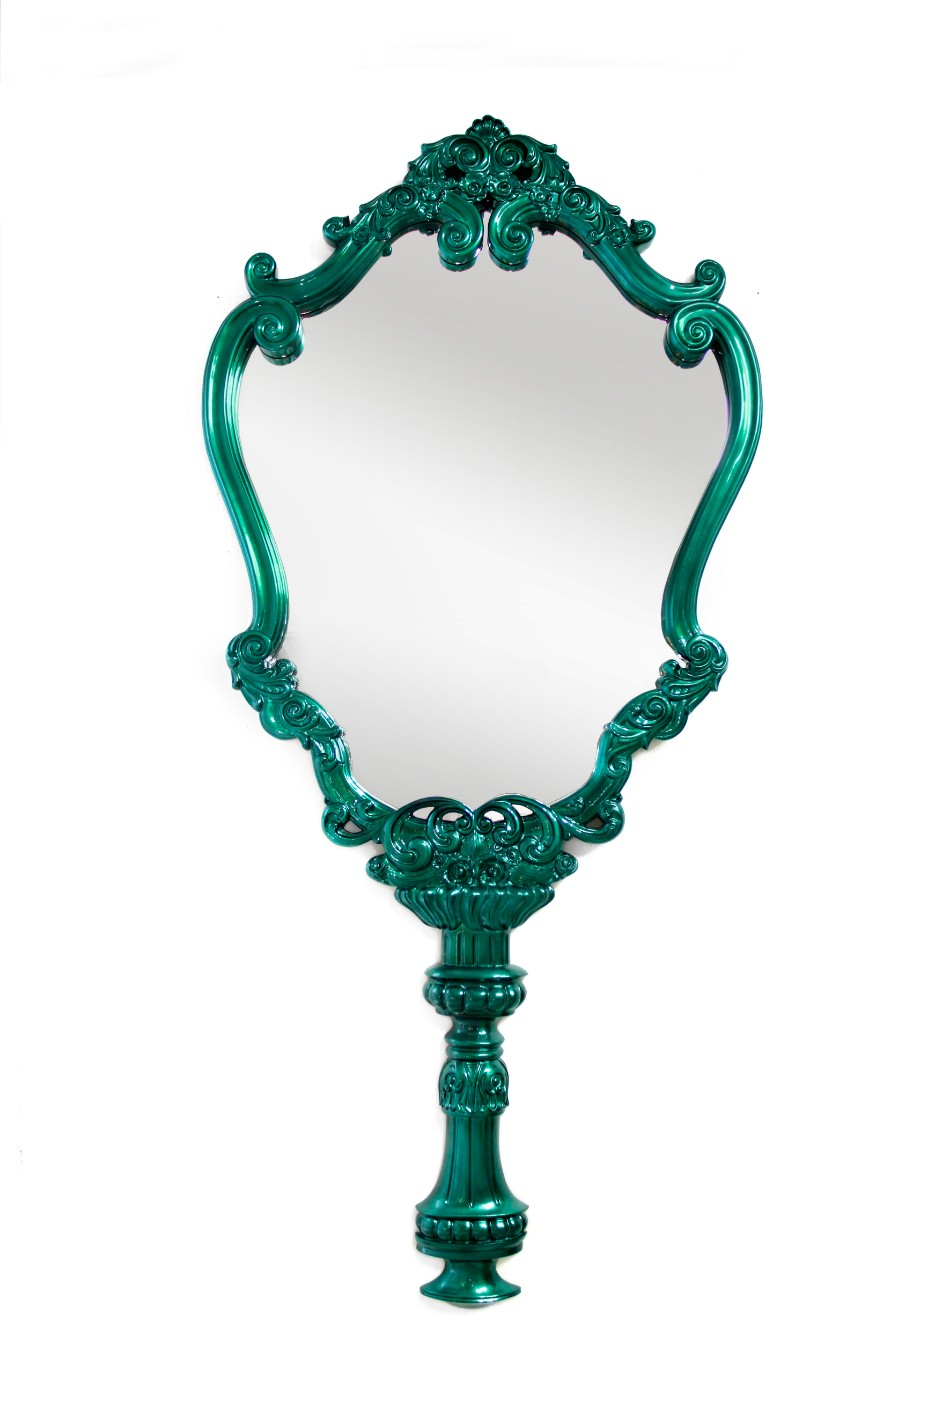 marie-therese-mirror-limited-edition-boca-do-lobo-01 Portugal Fashion Portugal Fashion: Boca do Lobo will tell you an exclusive story marie therese mirror limited edition boca do lobo 01